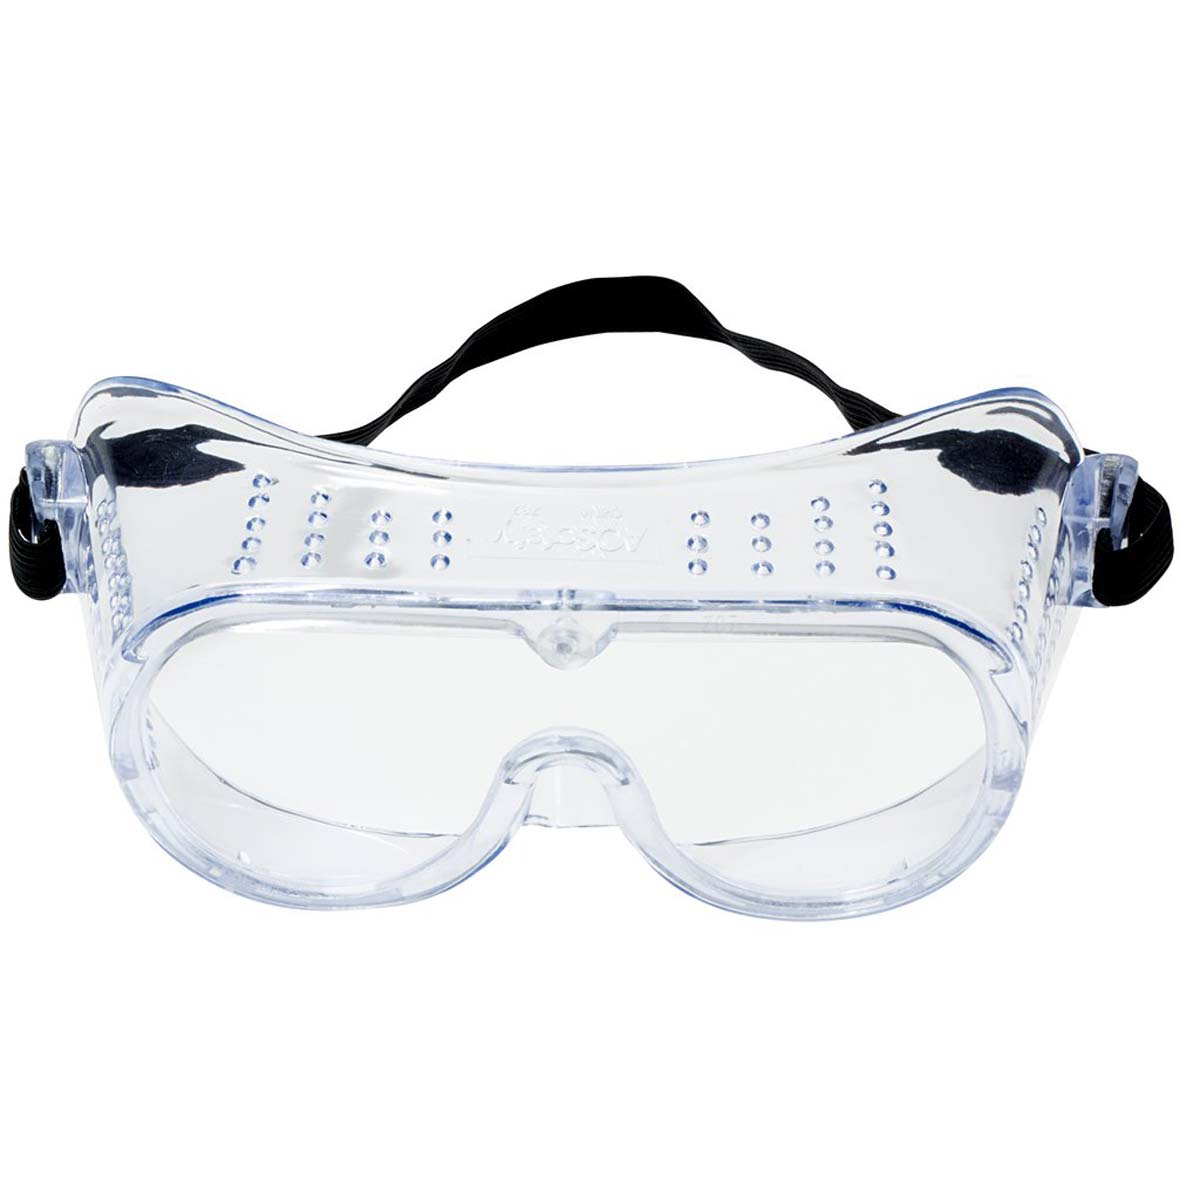 "3Mâ""¢ 332 Impact Safety Goggles 40650-00000-10, Clear Lens,"